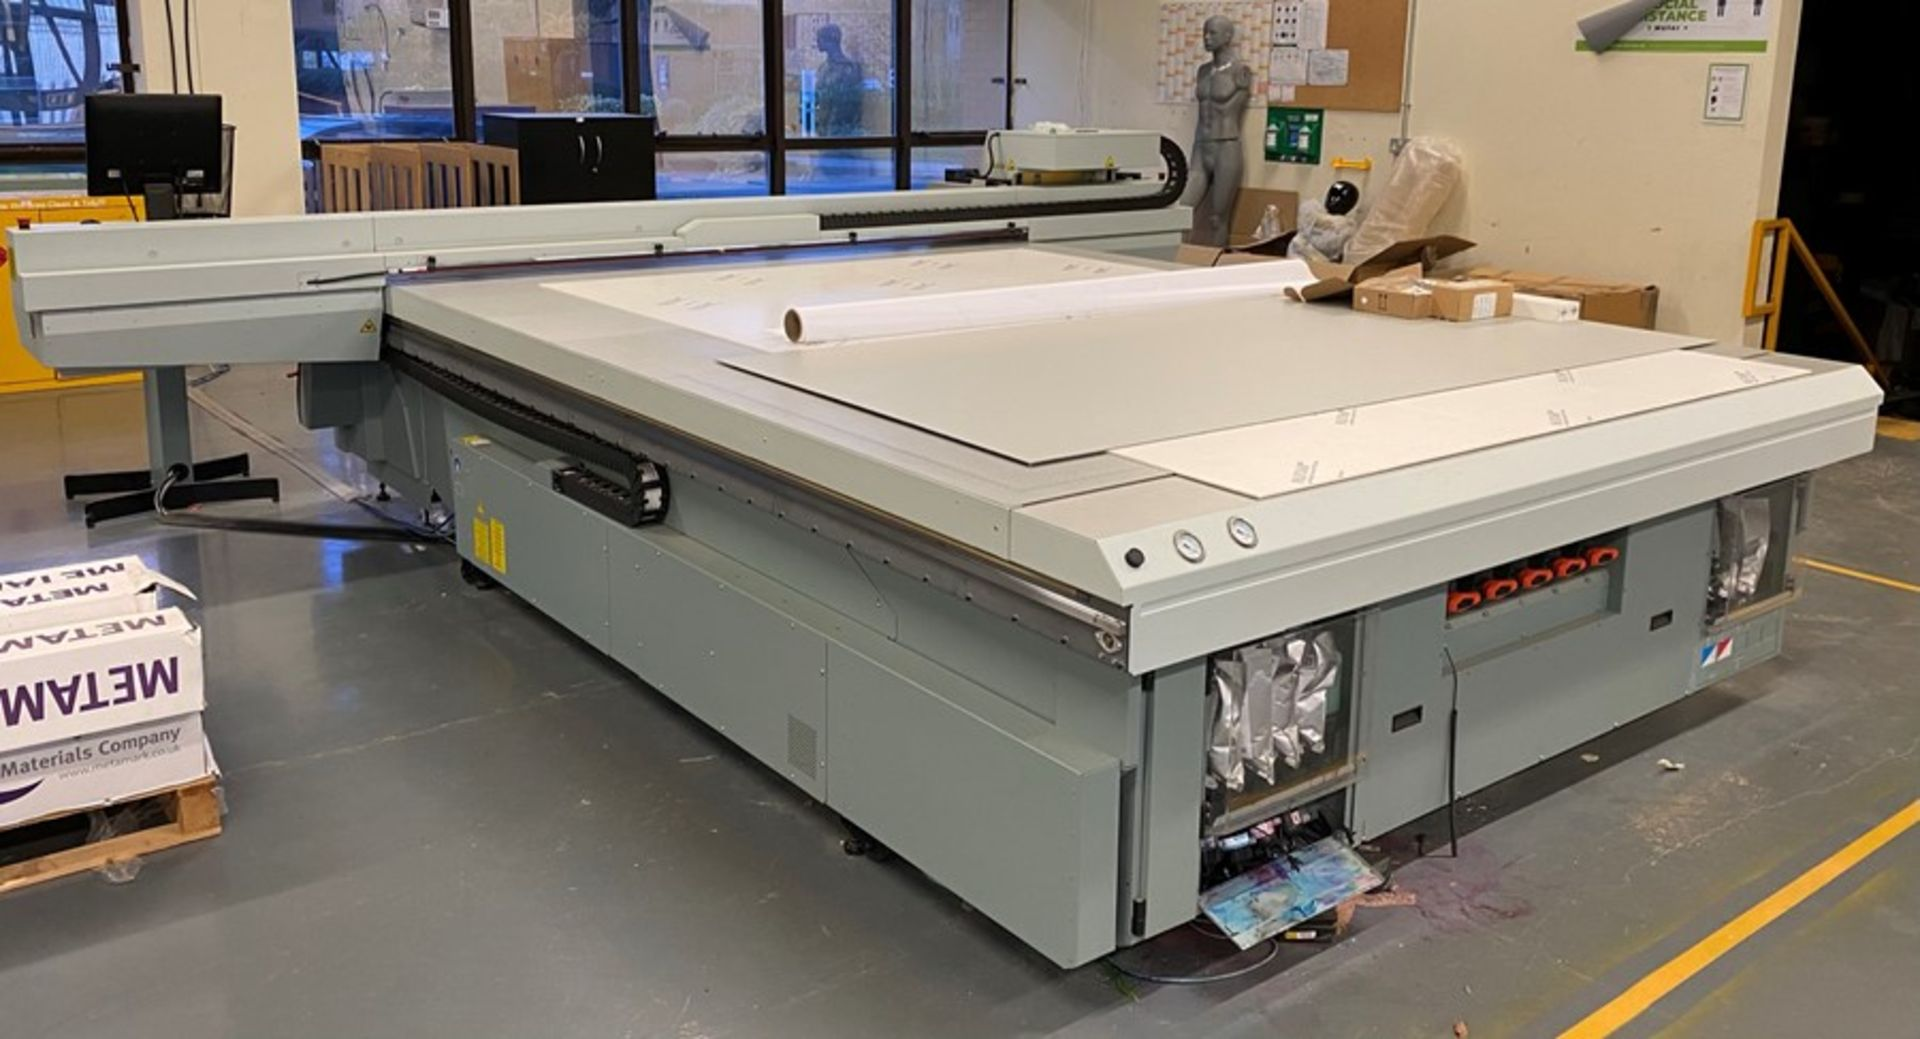 Oce Arizona 660 XT UV flatbed printer (2015) - Image 17 of 22